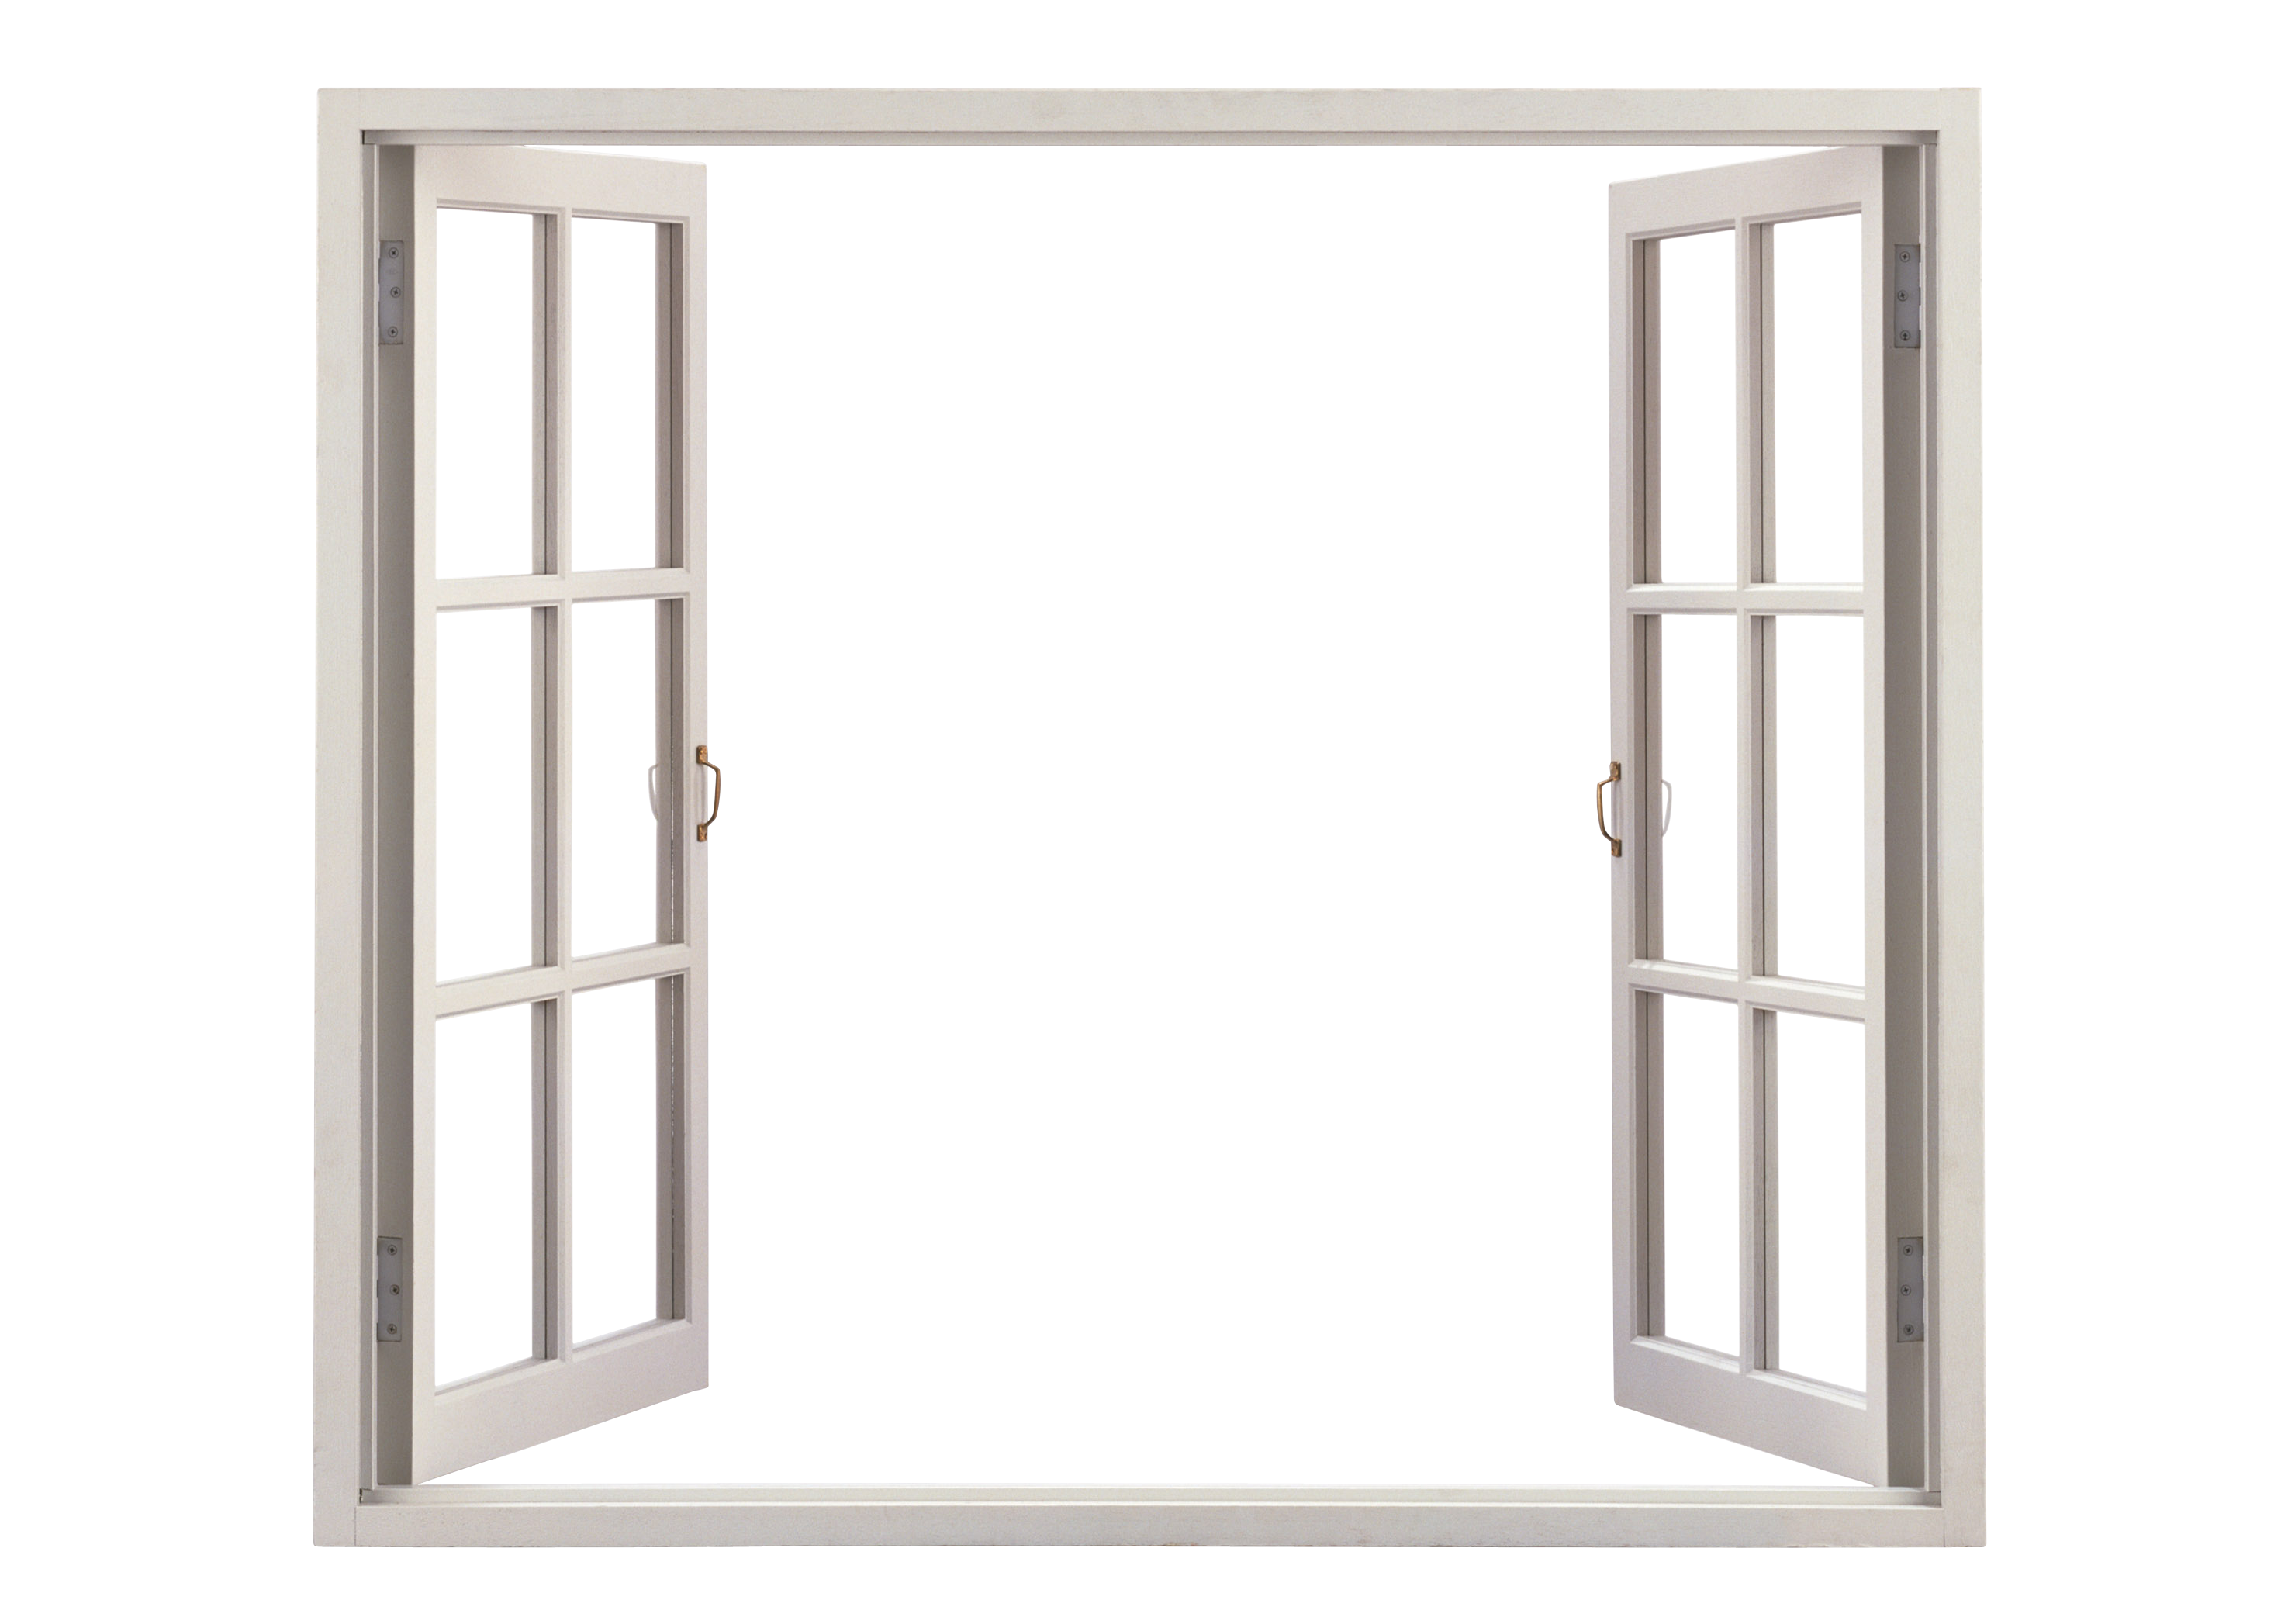 collection of window. Can windows open png files